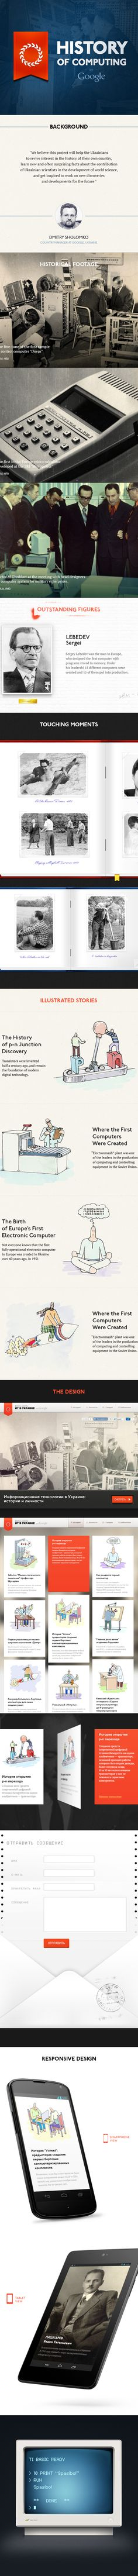 History of Computing by Google